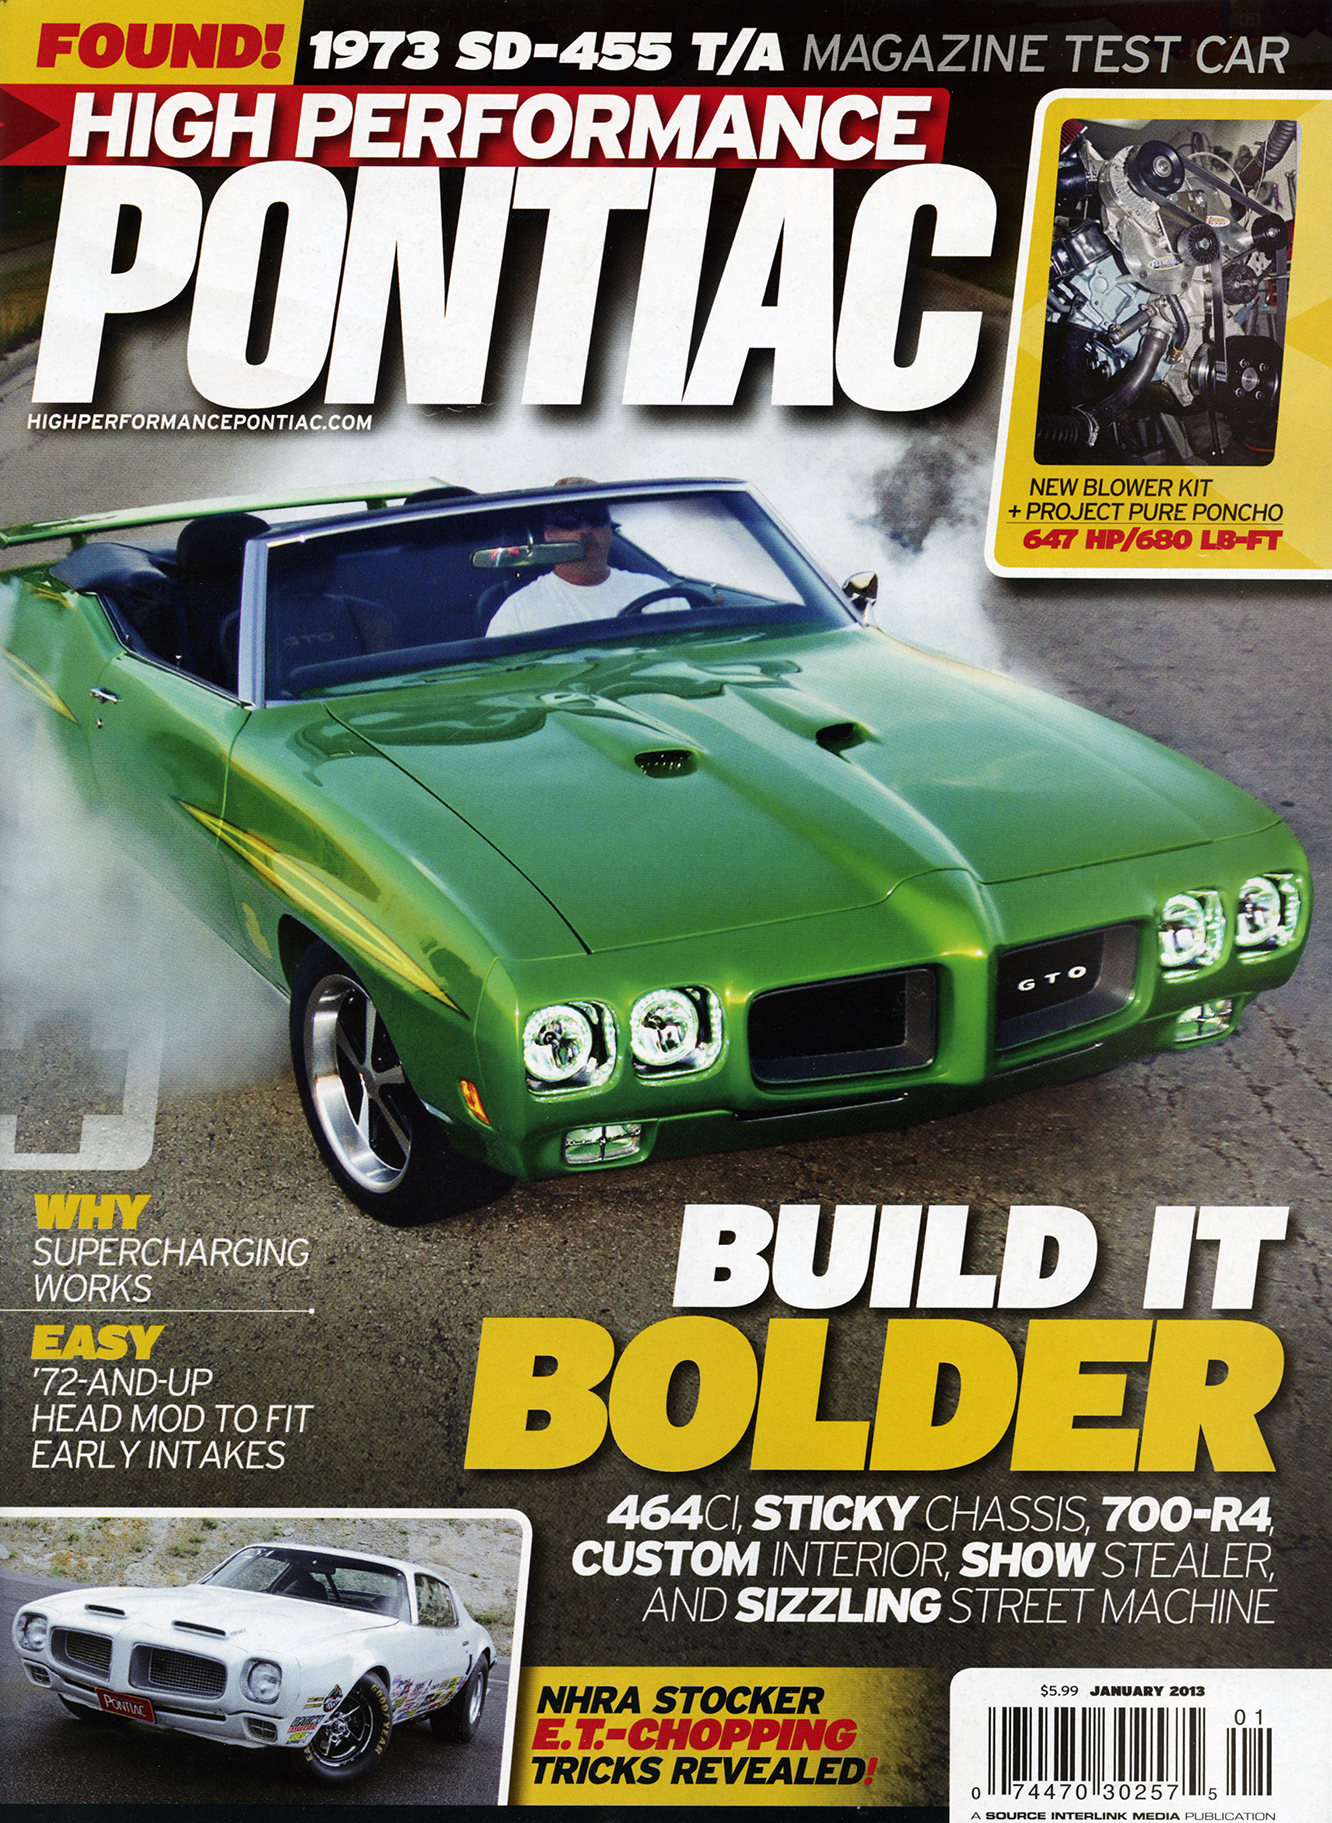 Gallery Crowd Control Posts Protect 1970 Pontiac GTO at Car